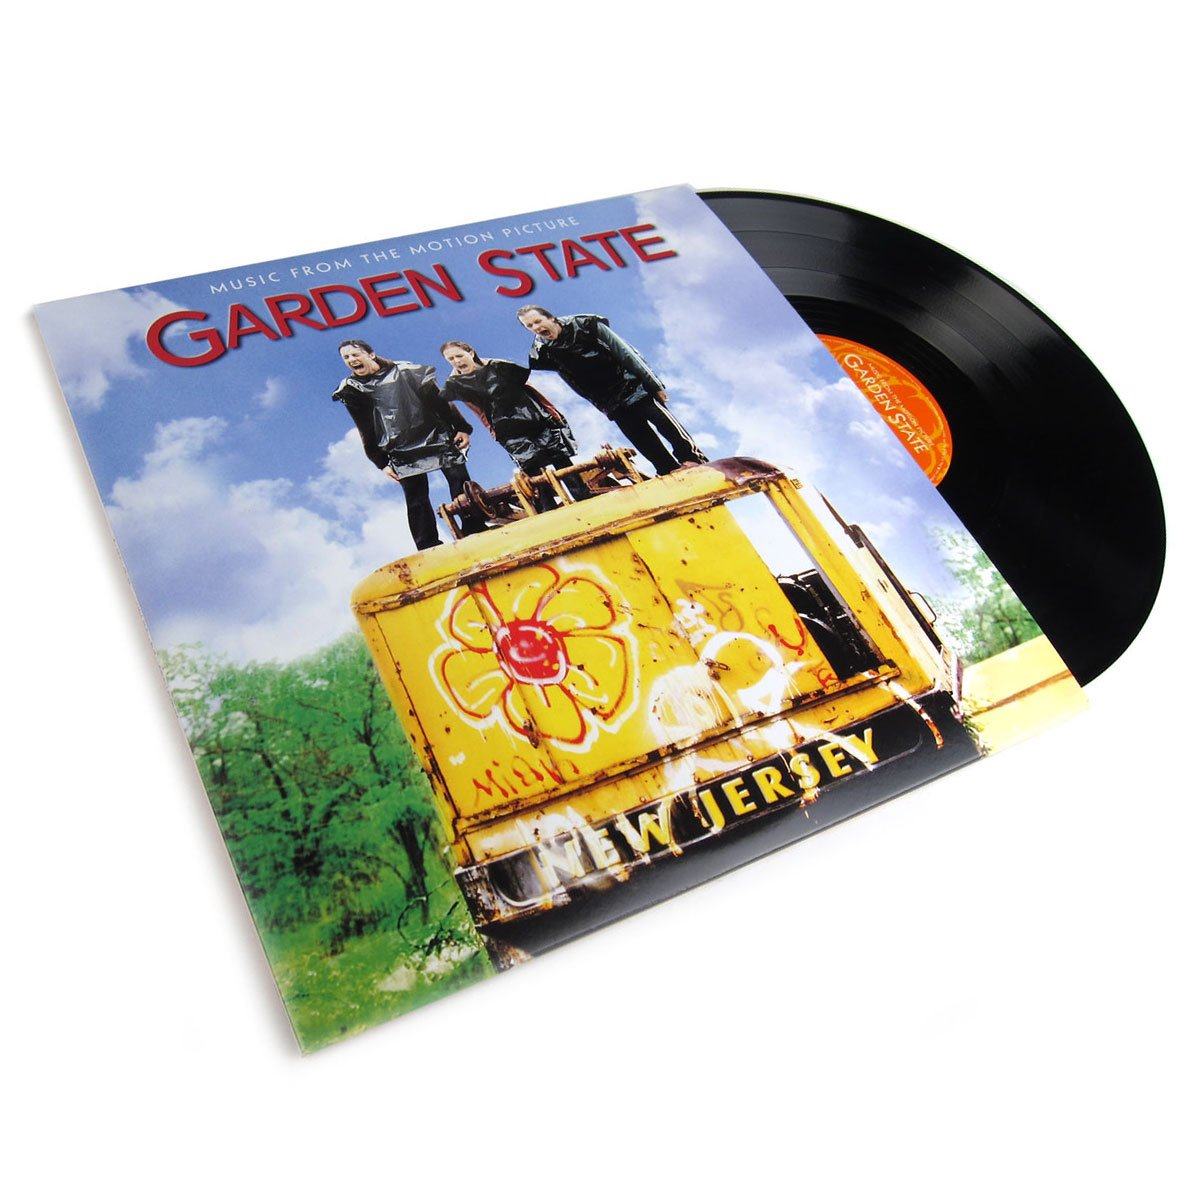 Various Artists: Garden State - Music From The Motion Picture (10th Anniversary Edition, 180g) Vinyl 2LP